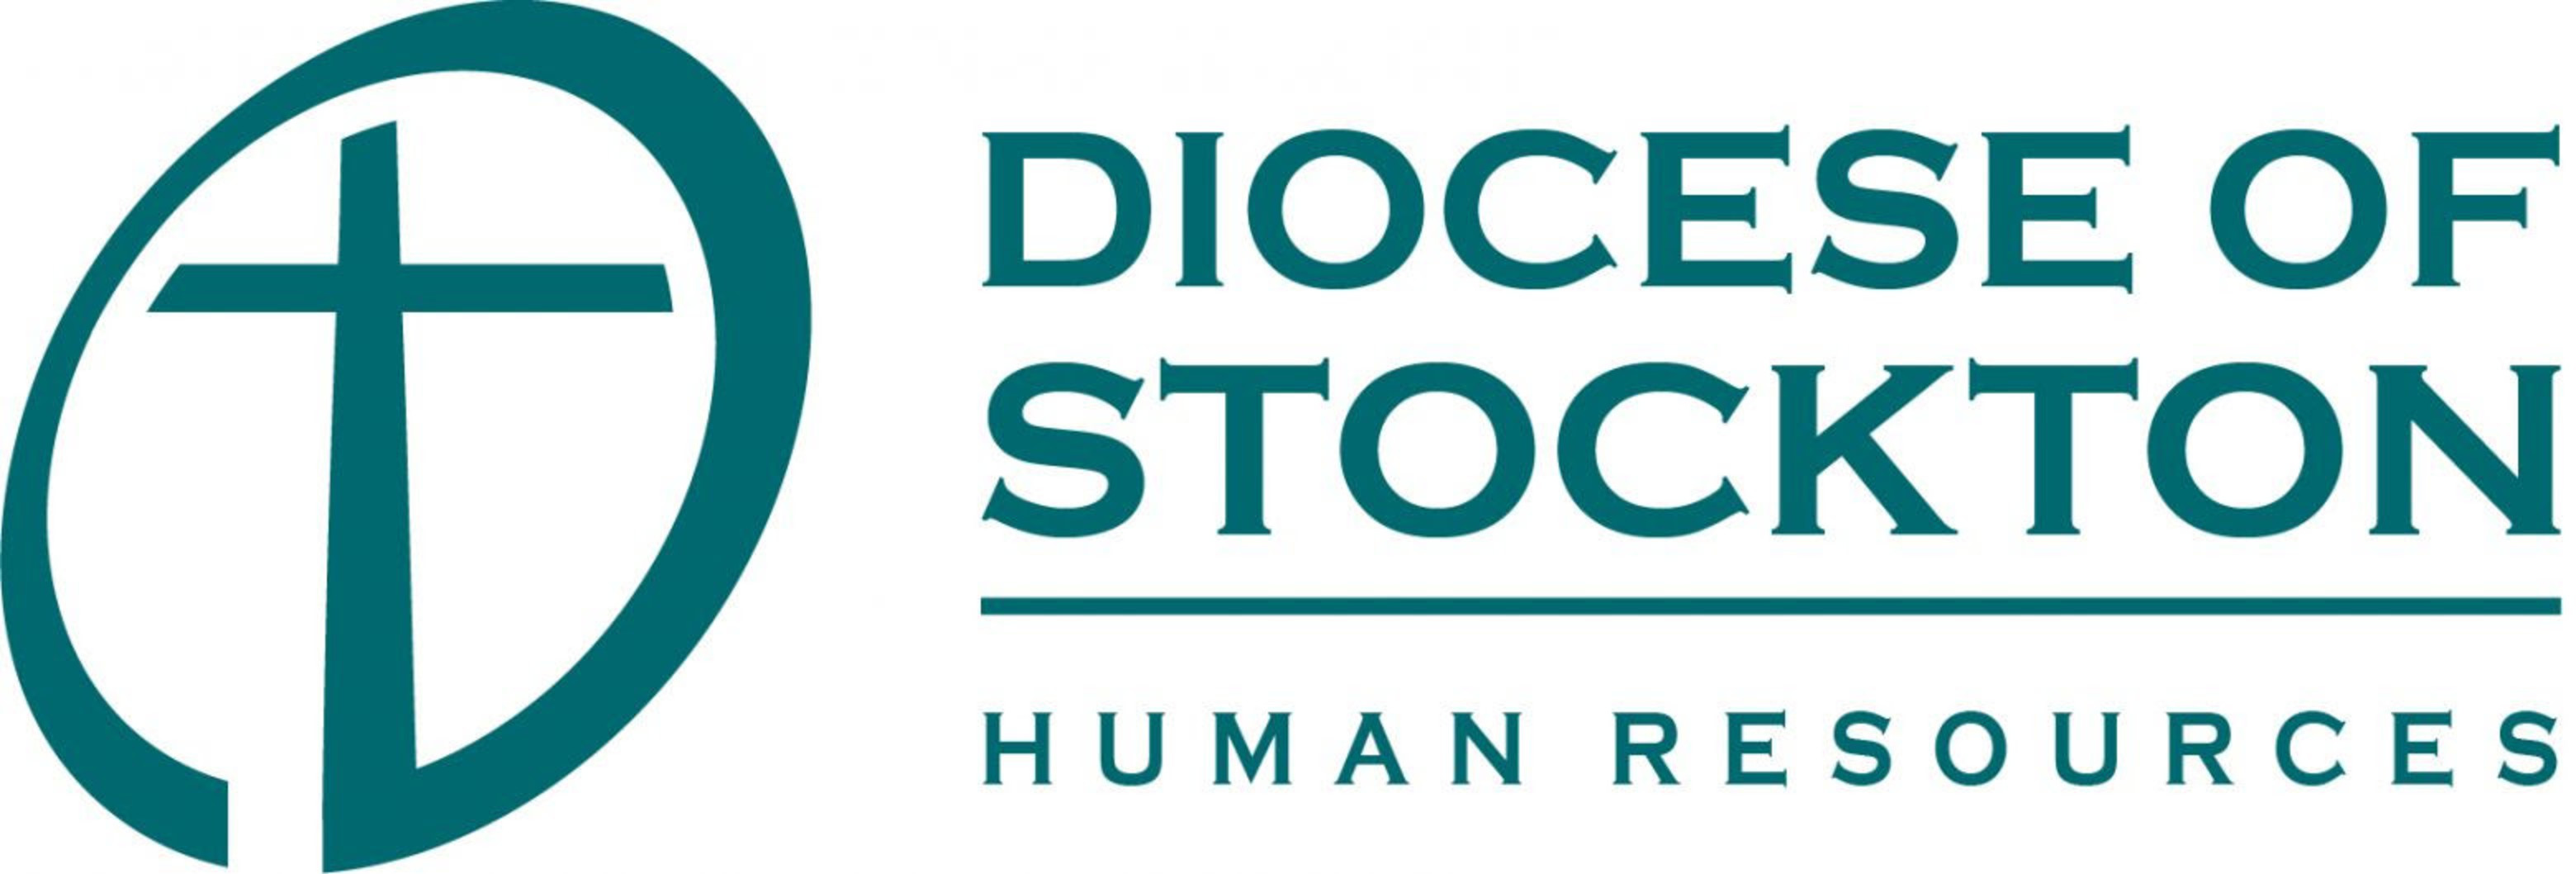 Human Resources-Diocese